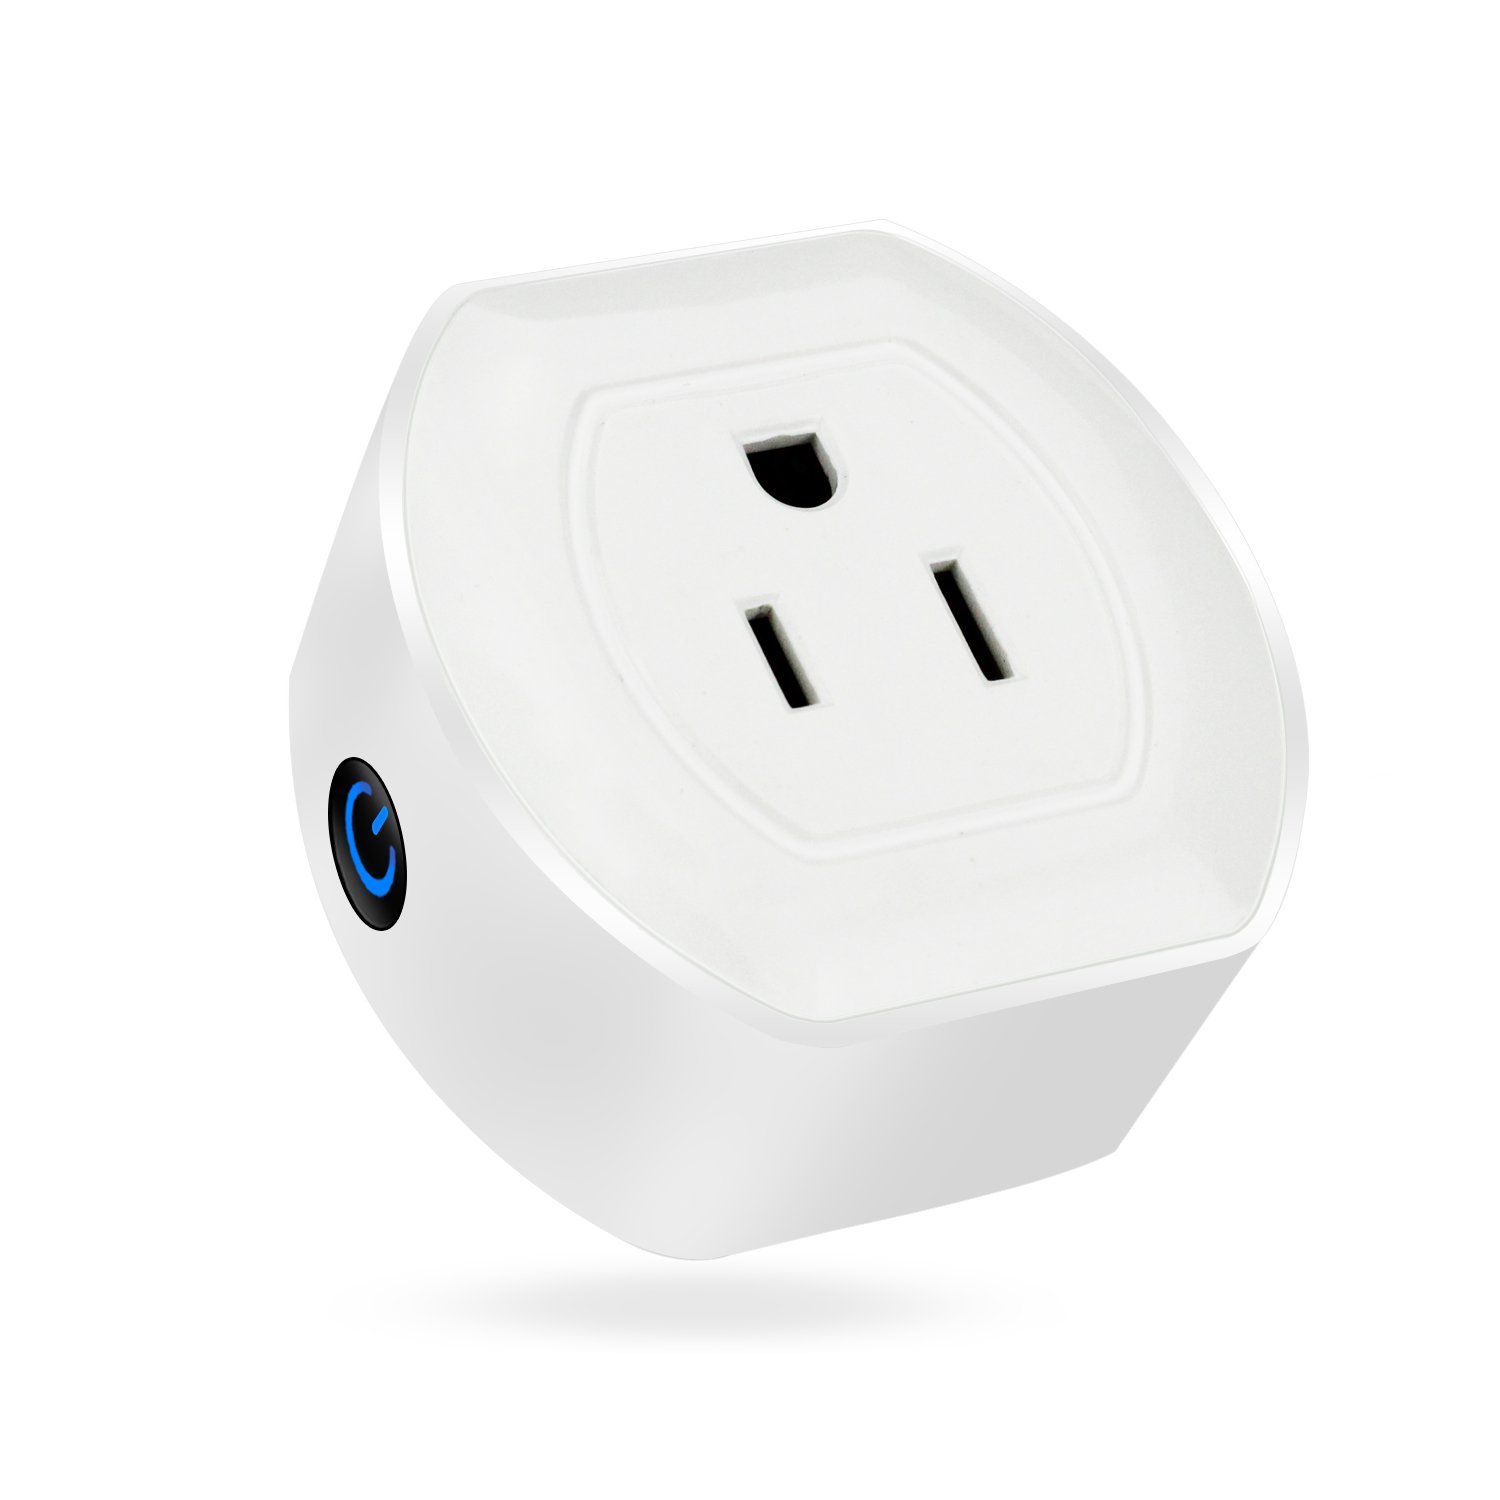 Martin Jerry Mini Wifi Smart Plug Works with Alexa, Google Home, Smart Home Devices to Control Home Appliance from Anywhere, no Hub Required, Wifi Smart Socket (V04) (1 Pack)